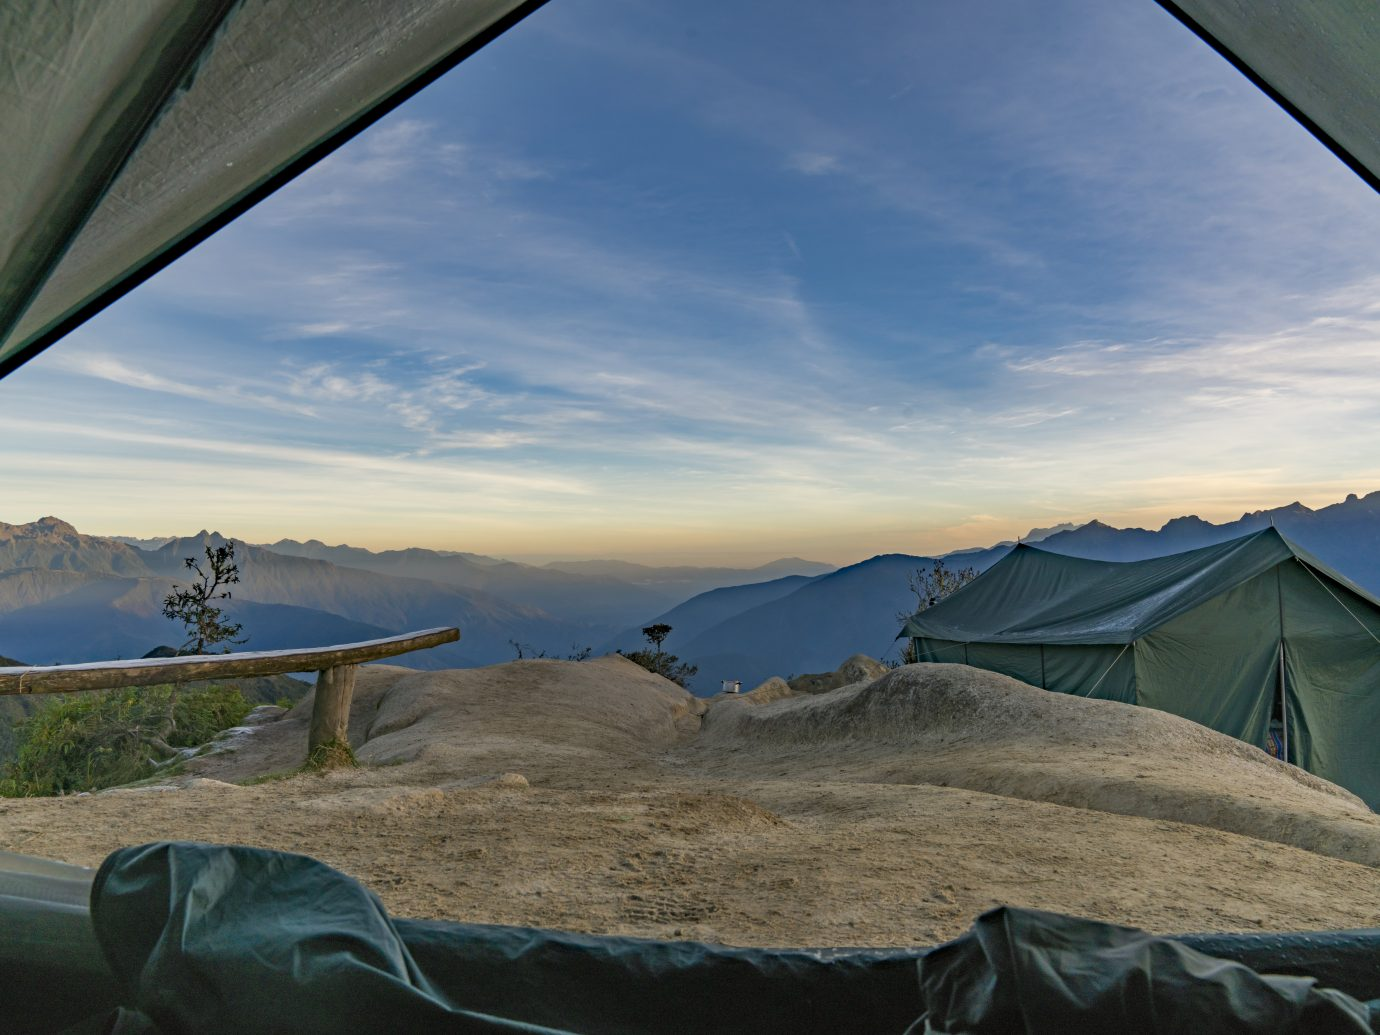 The third campsite on the Inca Trail is on top of a mountain ridge overlooking the Sacred Valley